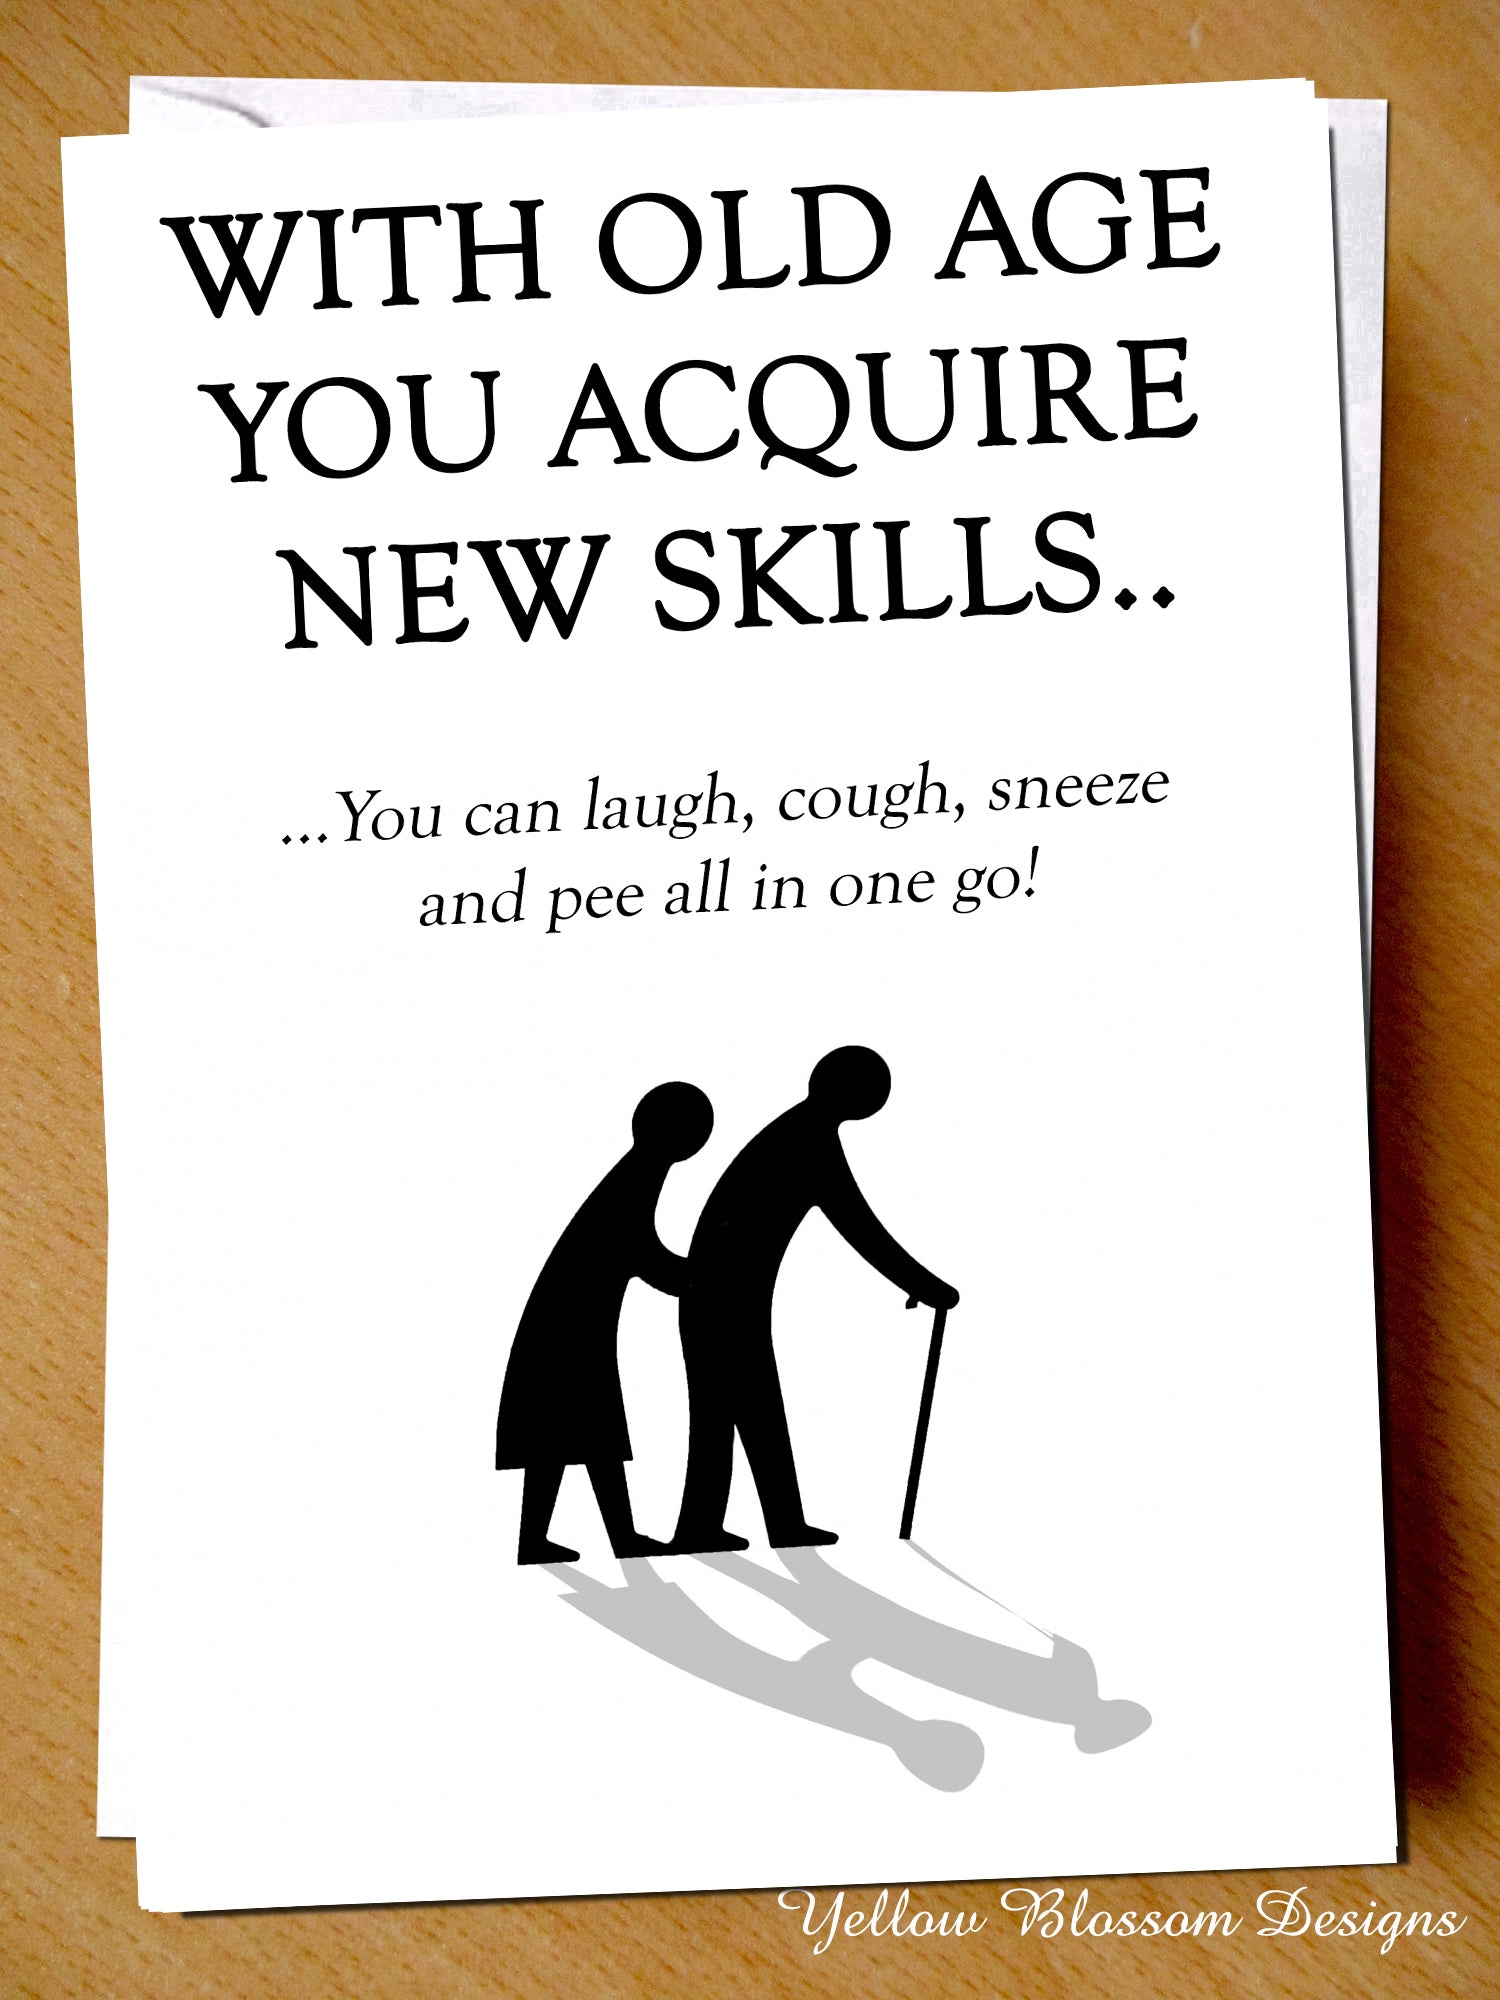 Funny birthday card with old age you acquire new skills funny birthday card with old age you acquire new skills bookmarktalkfo Gallery